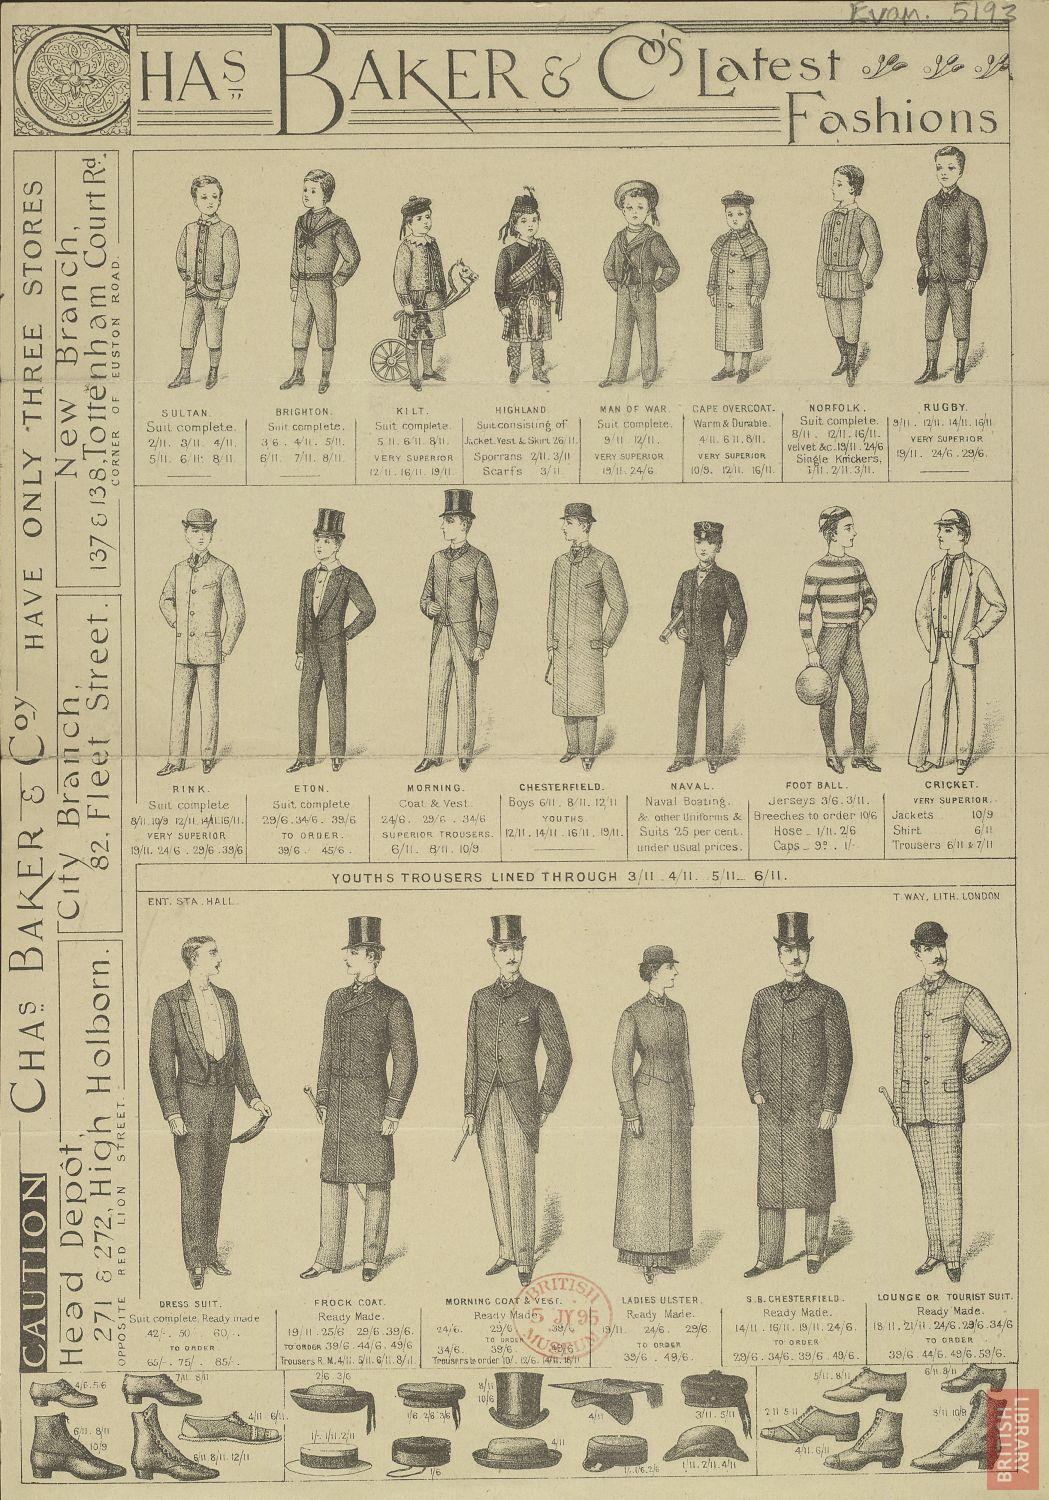 Advertisement for clothing by Chas. Baker & Co